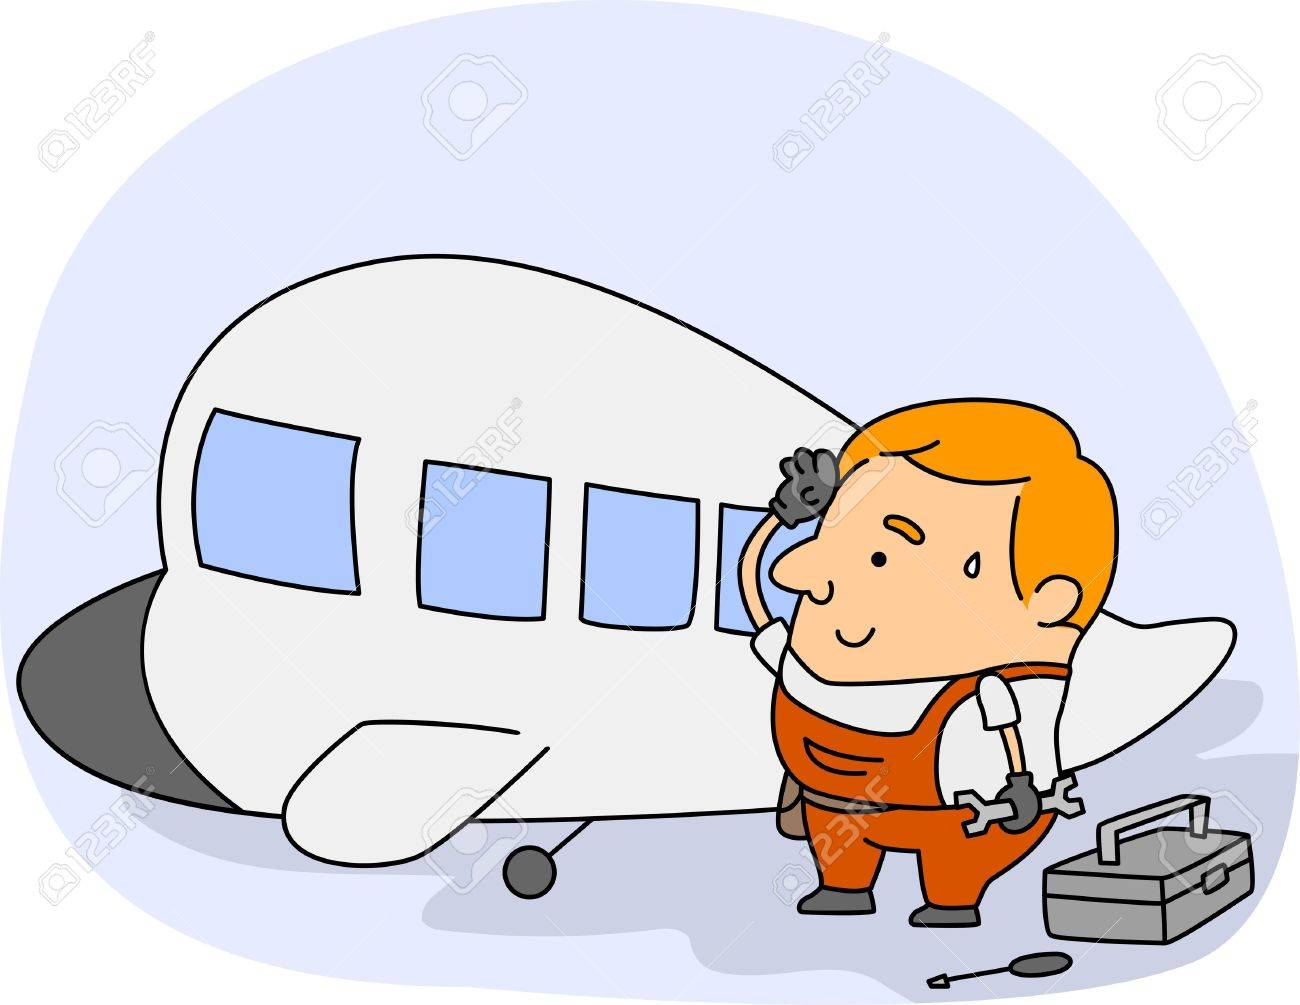 Illustration Of An Aircraft Mechanic At Work Stock Photo, Picture ...